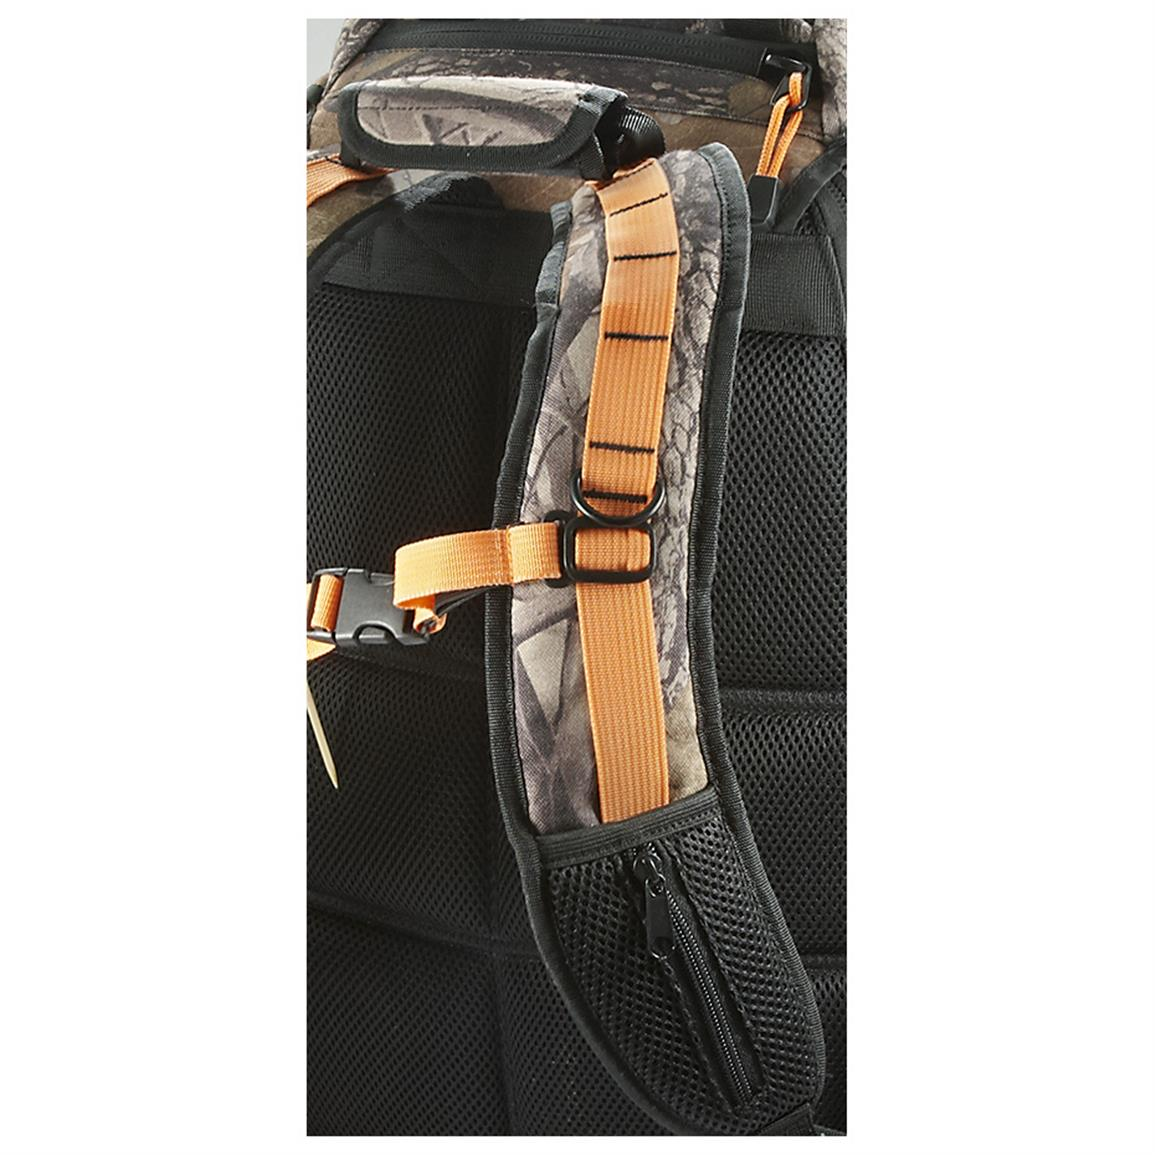 Ergonomic adjustable shoulder straps for comfortable carry